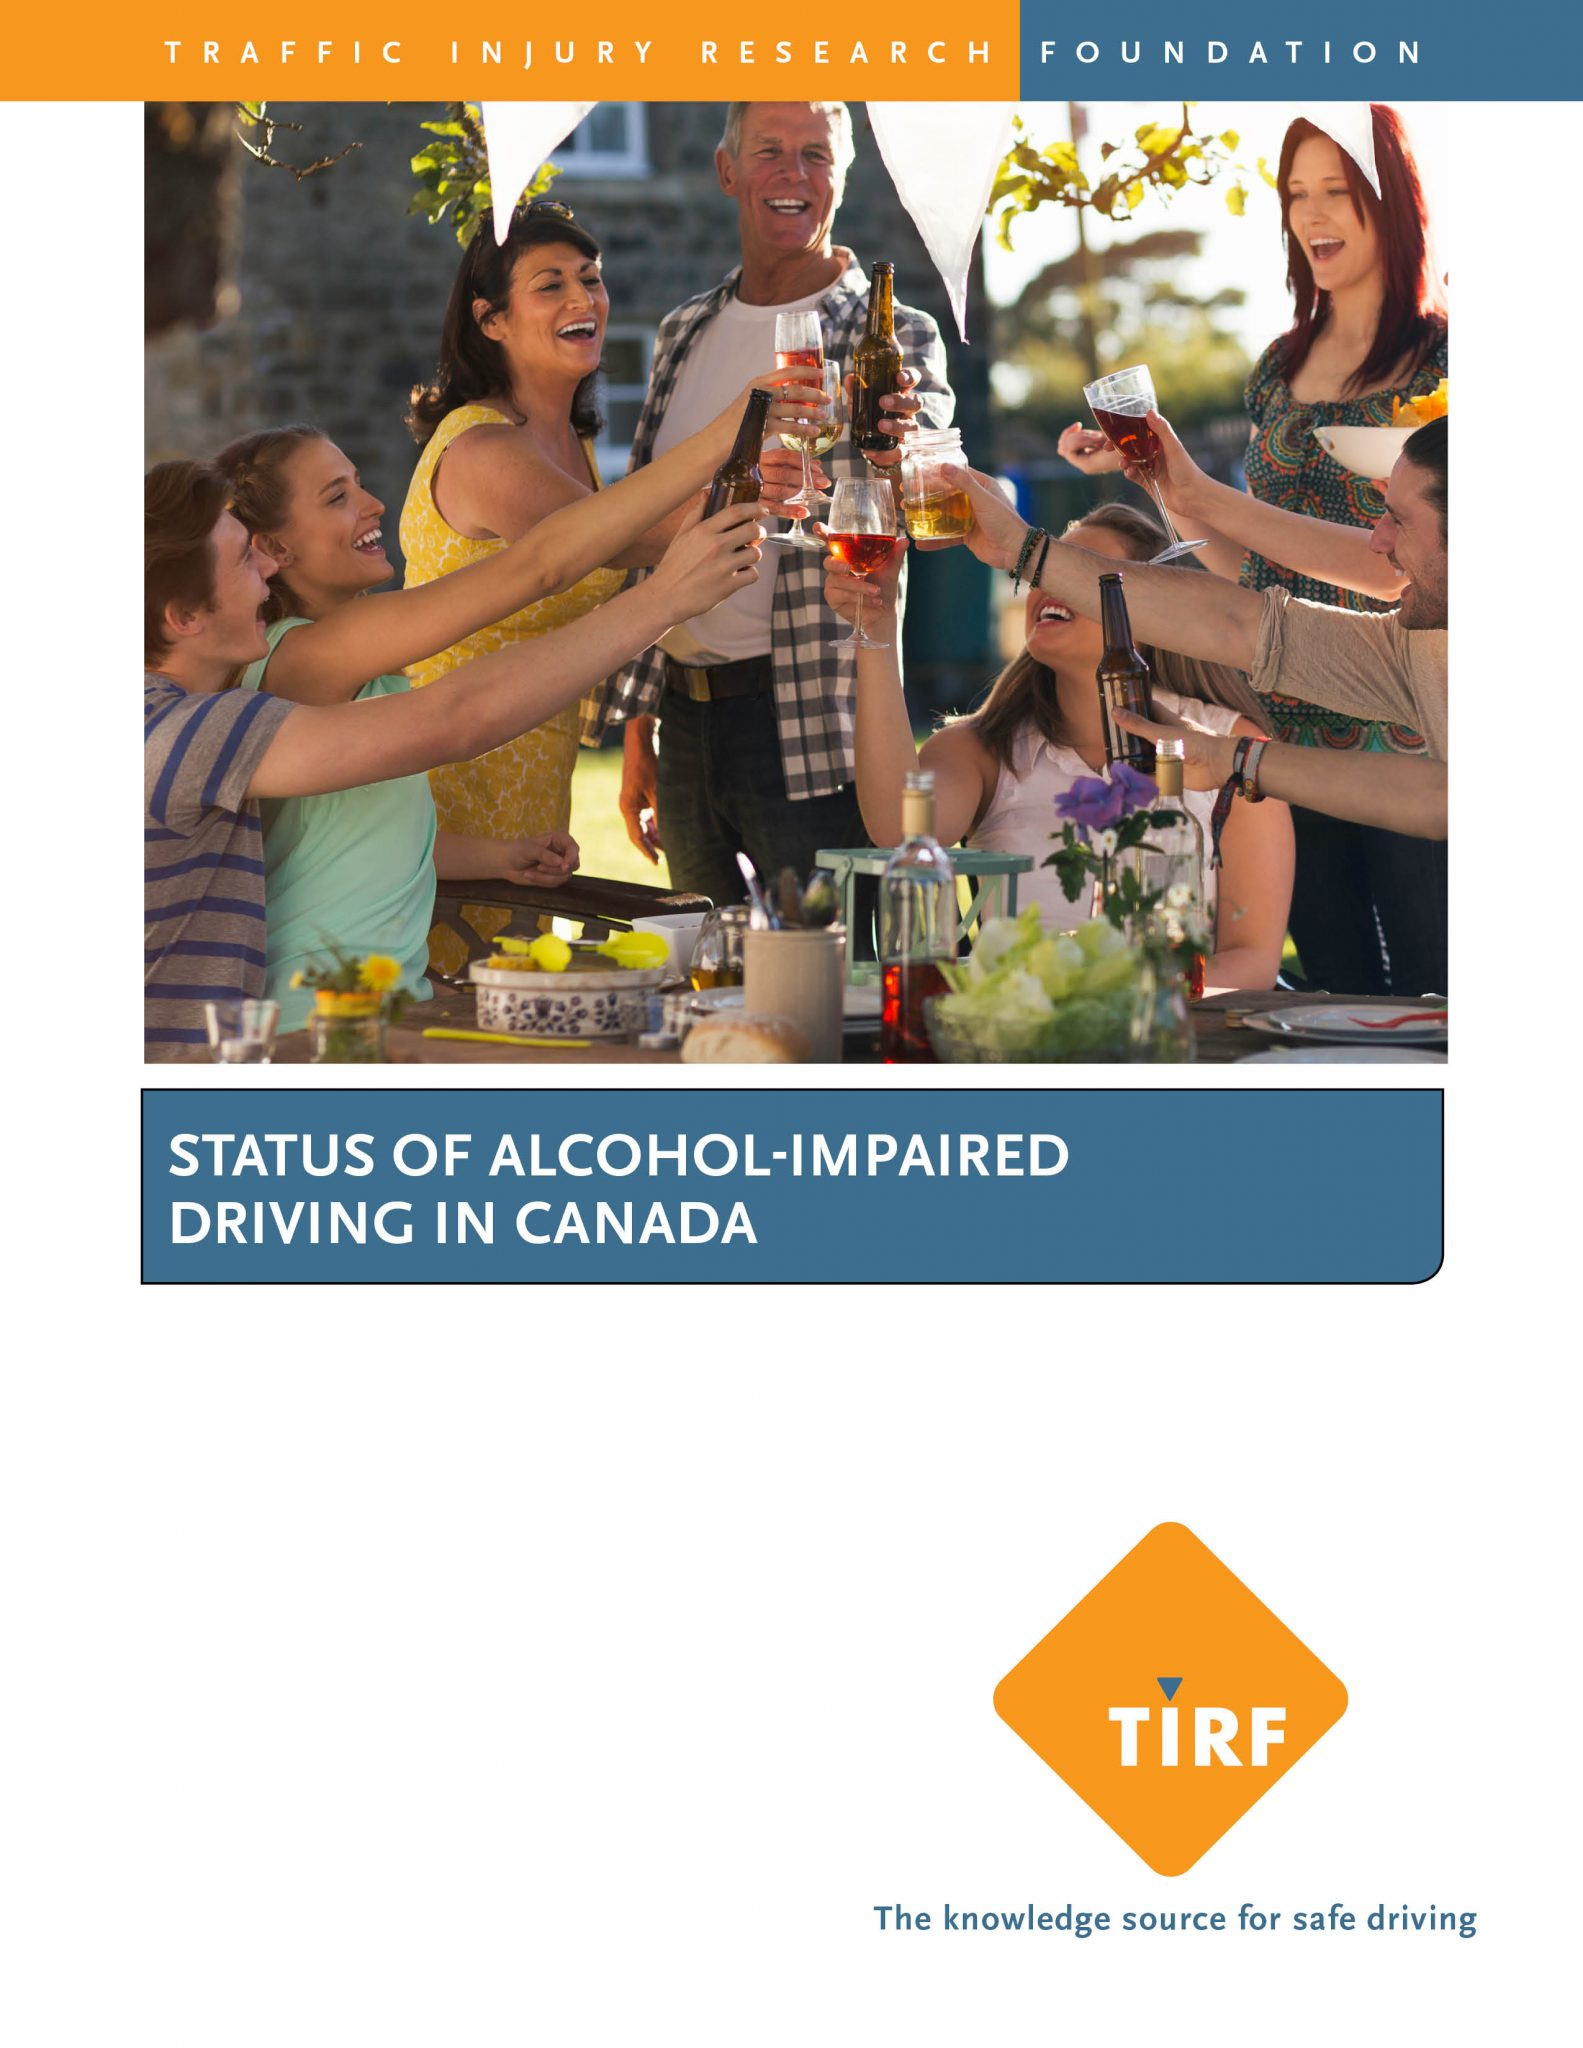 Status of Alcohol-Impaired Driving in Canada